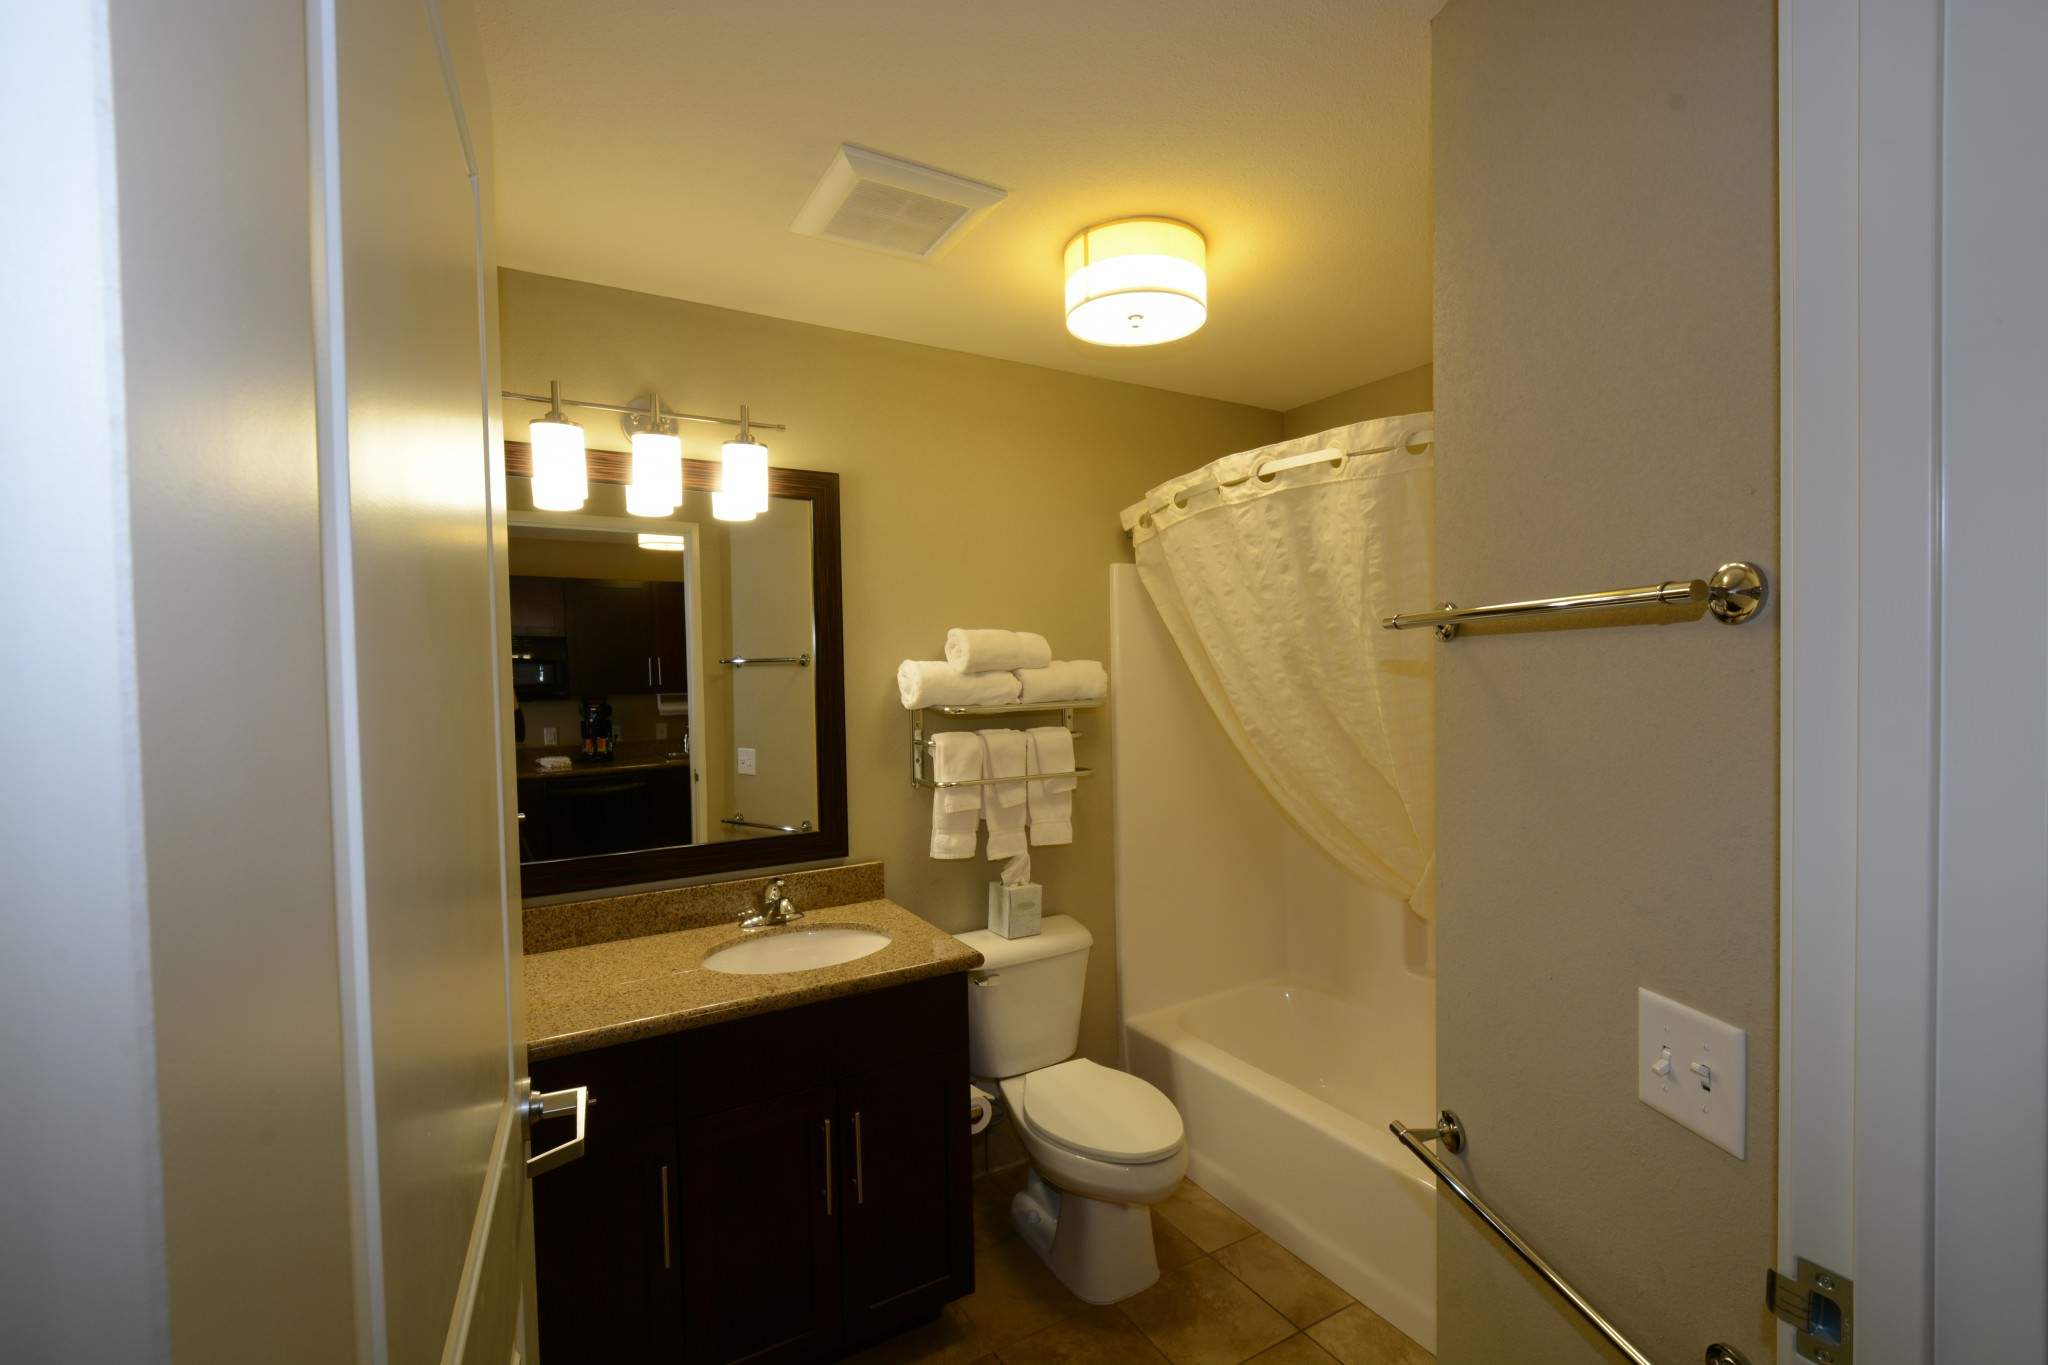 HomStay bathroom